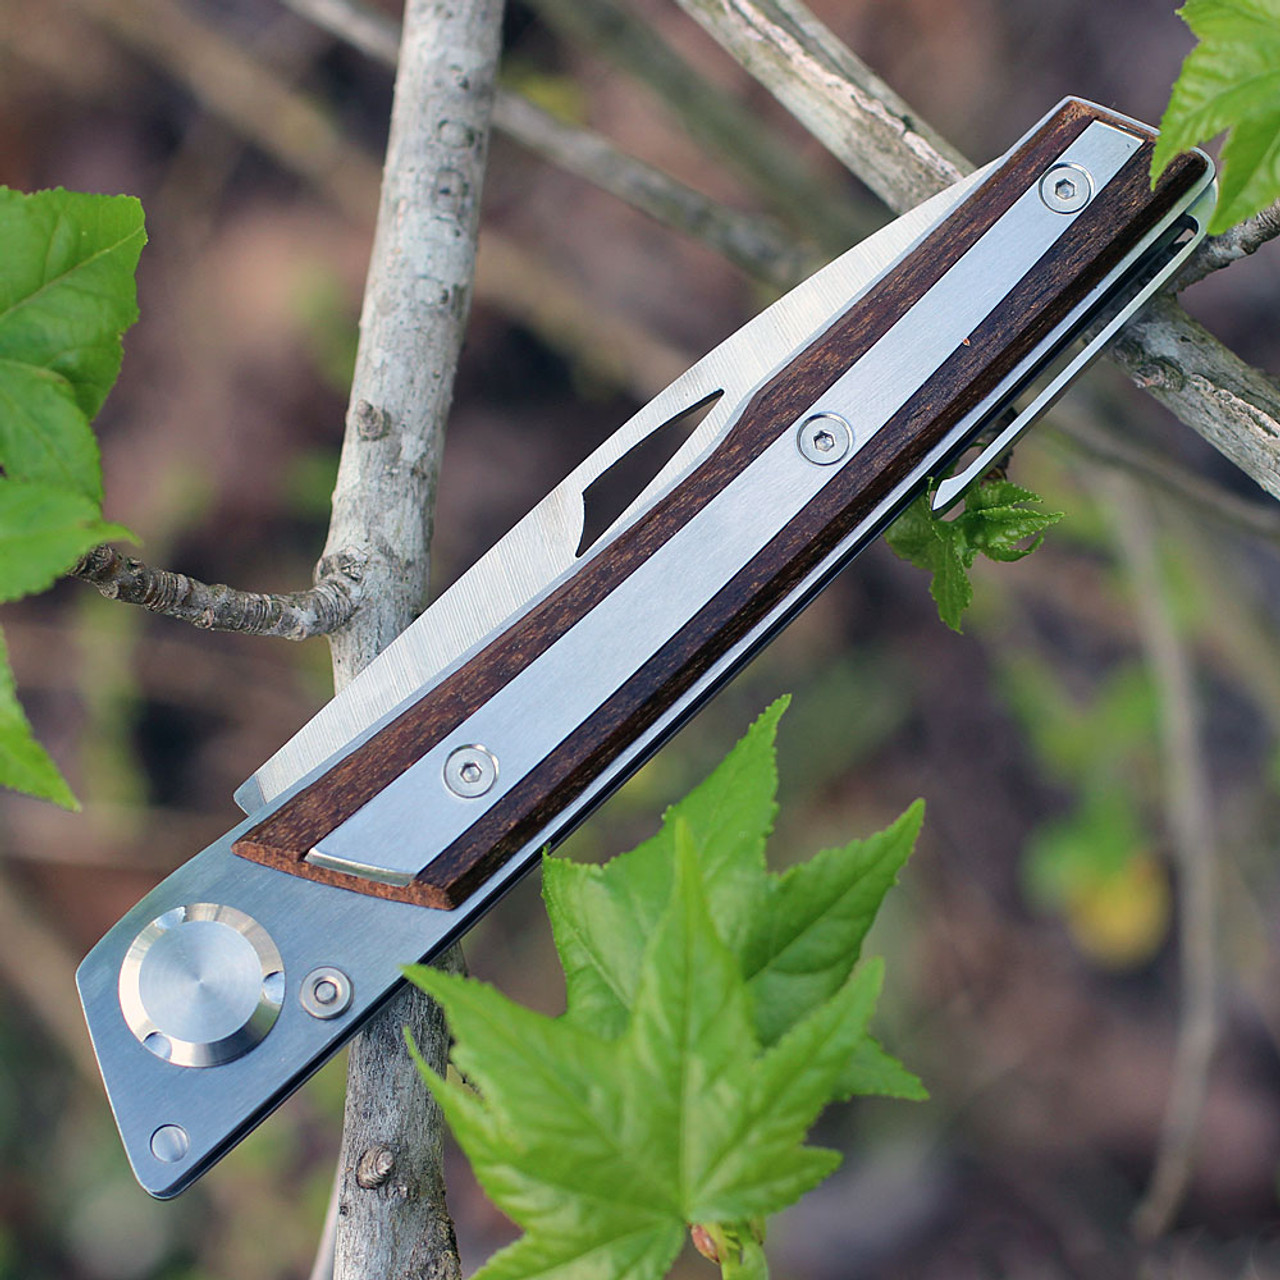 Actilam S4CWC Wood Folder w/ Clip, 3.375 in 14C28N SS Plain Blade